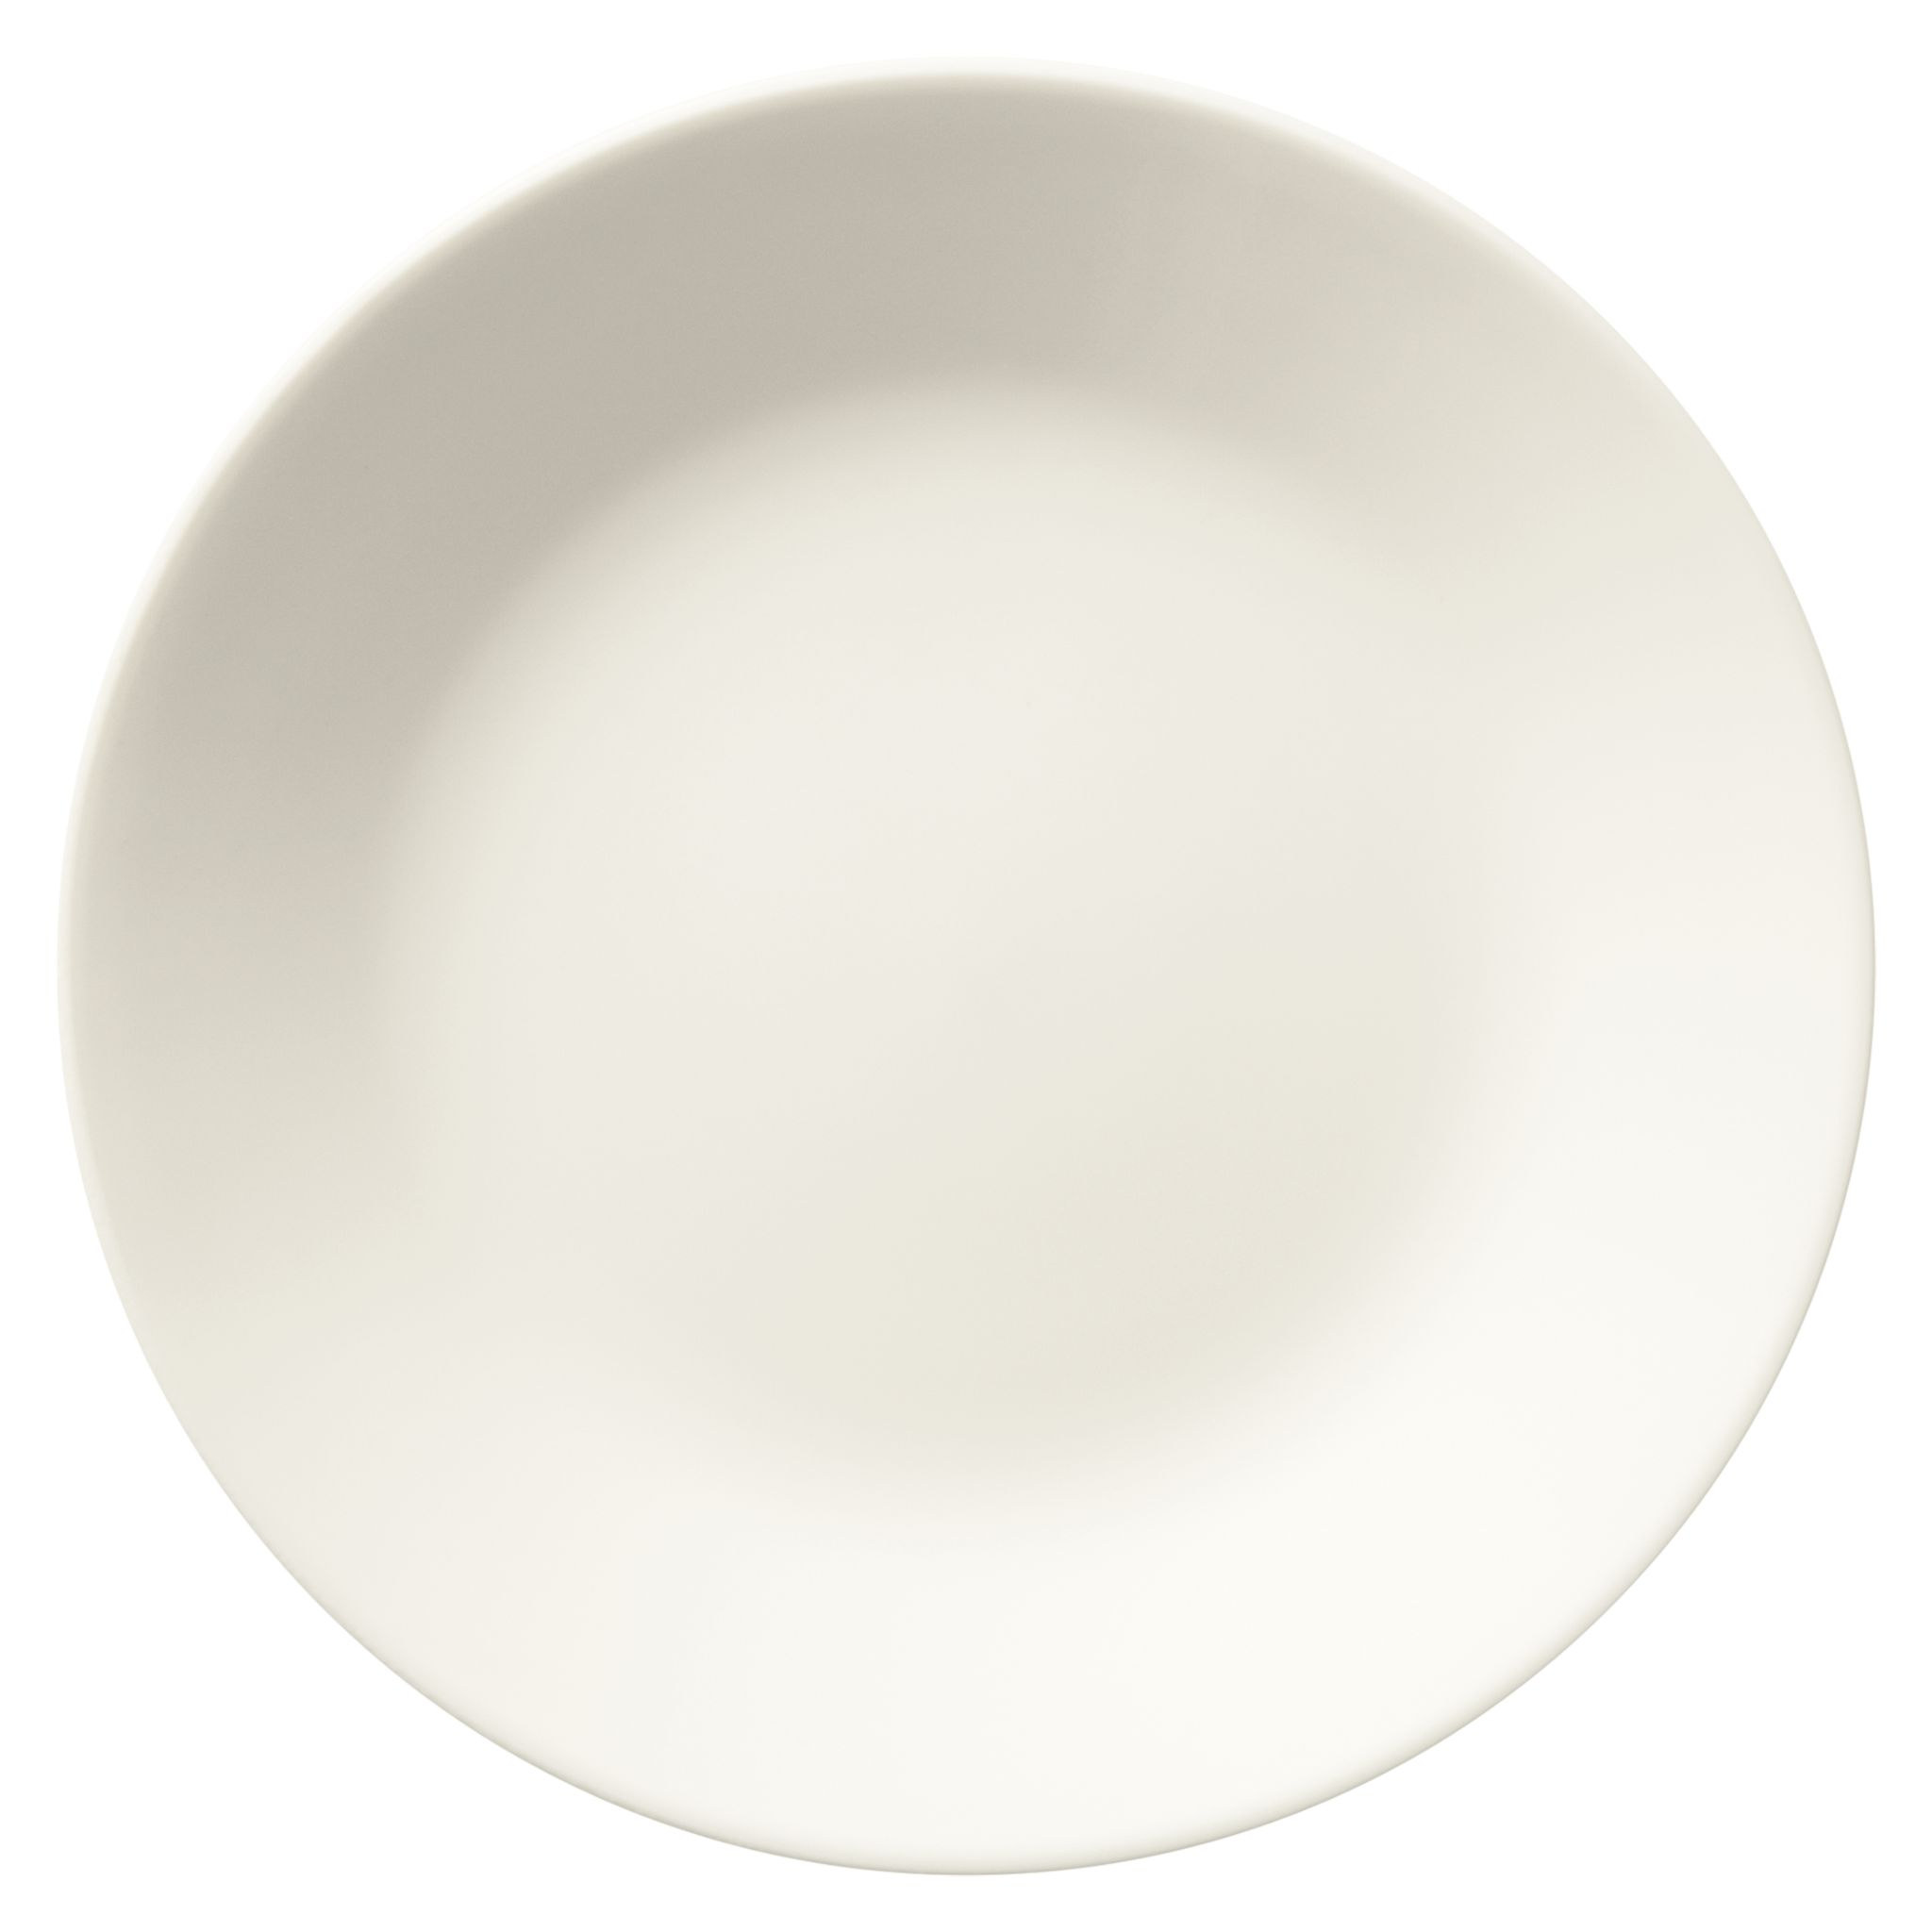 Corelle_Warm_White_675_Appetizer_Plate